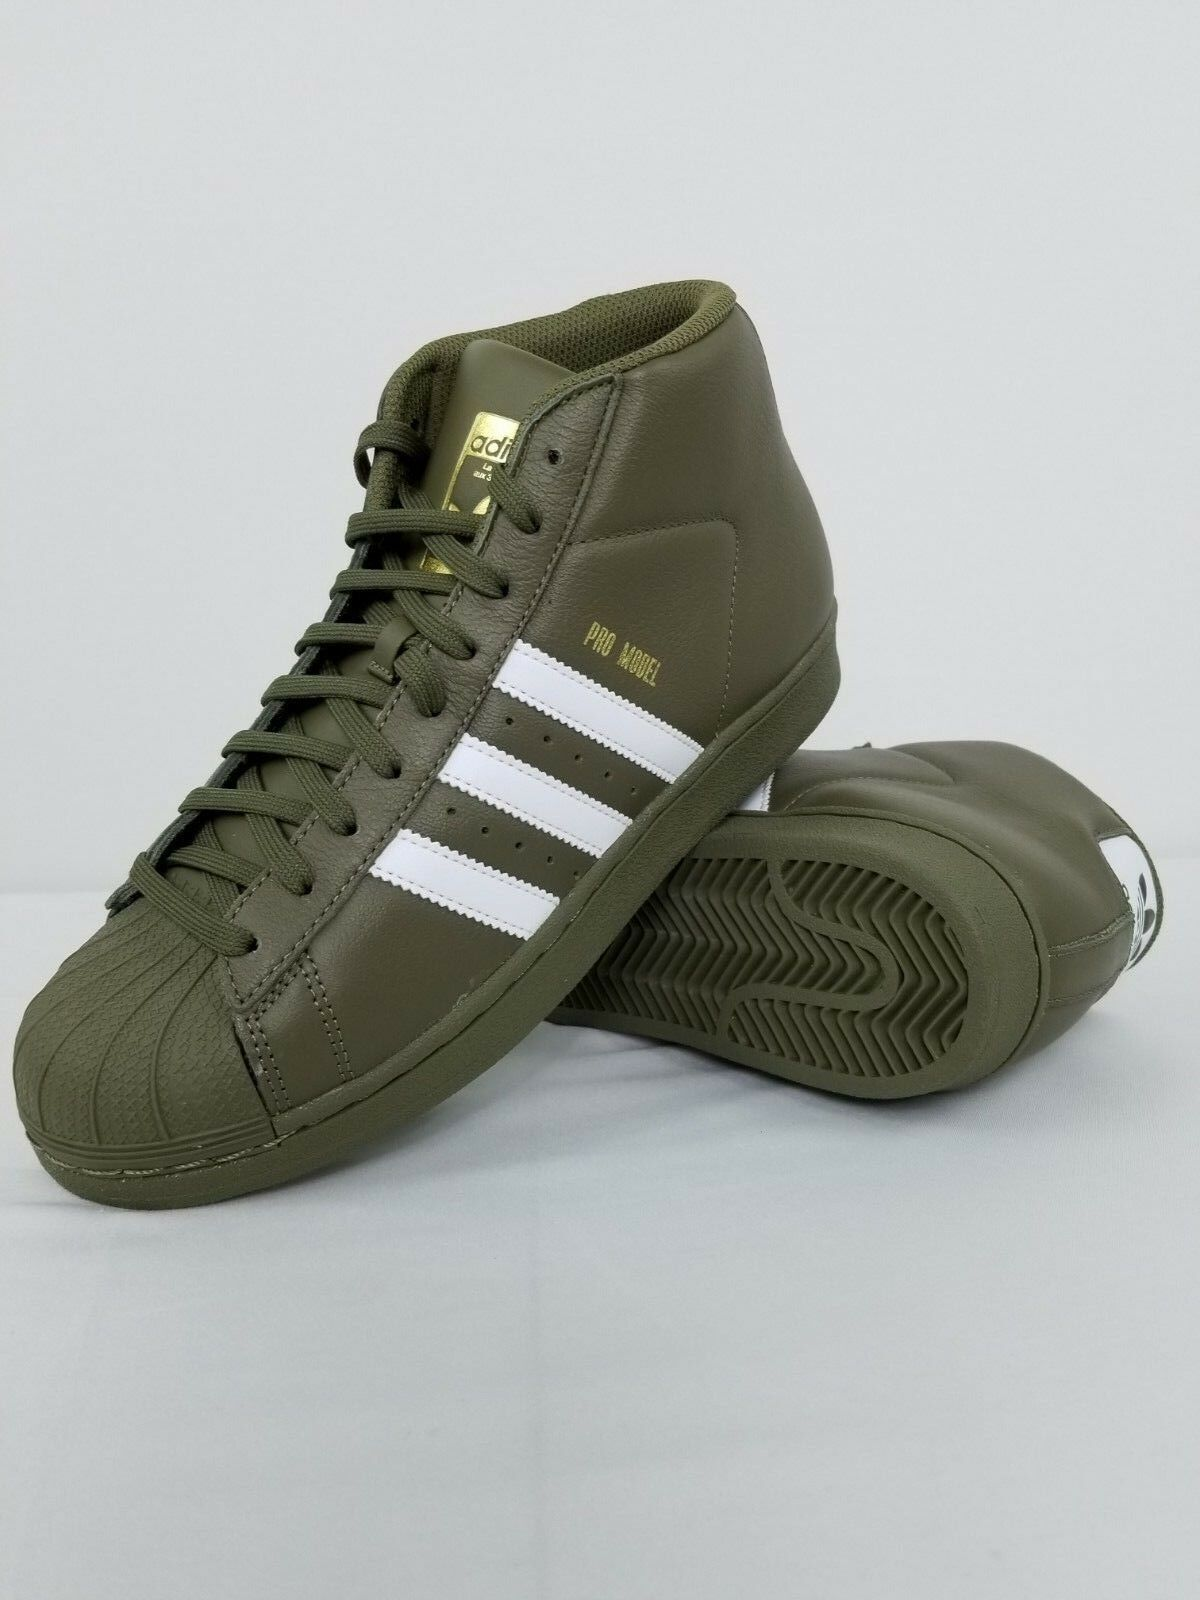 ADIDAS ORIGINALS PRO MODEL AC7067 OLIVE CARGO GREEN WHITE gold METALLIC 8, 9